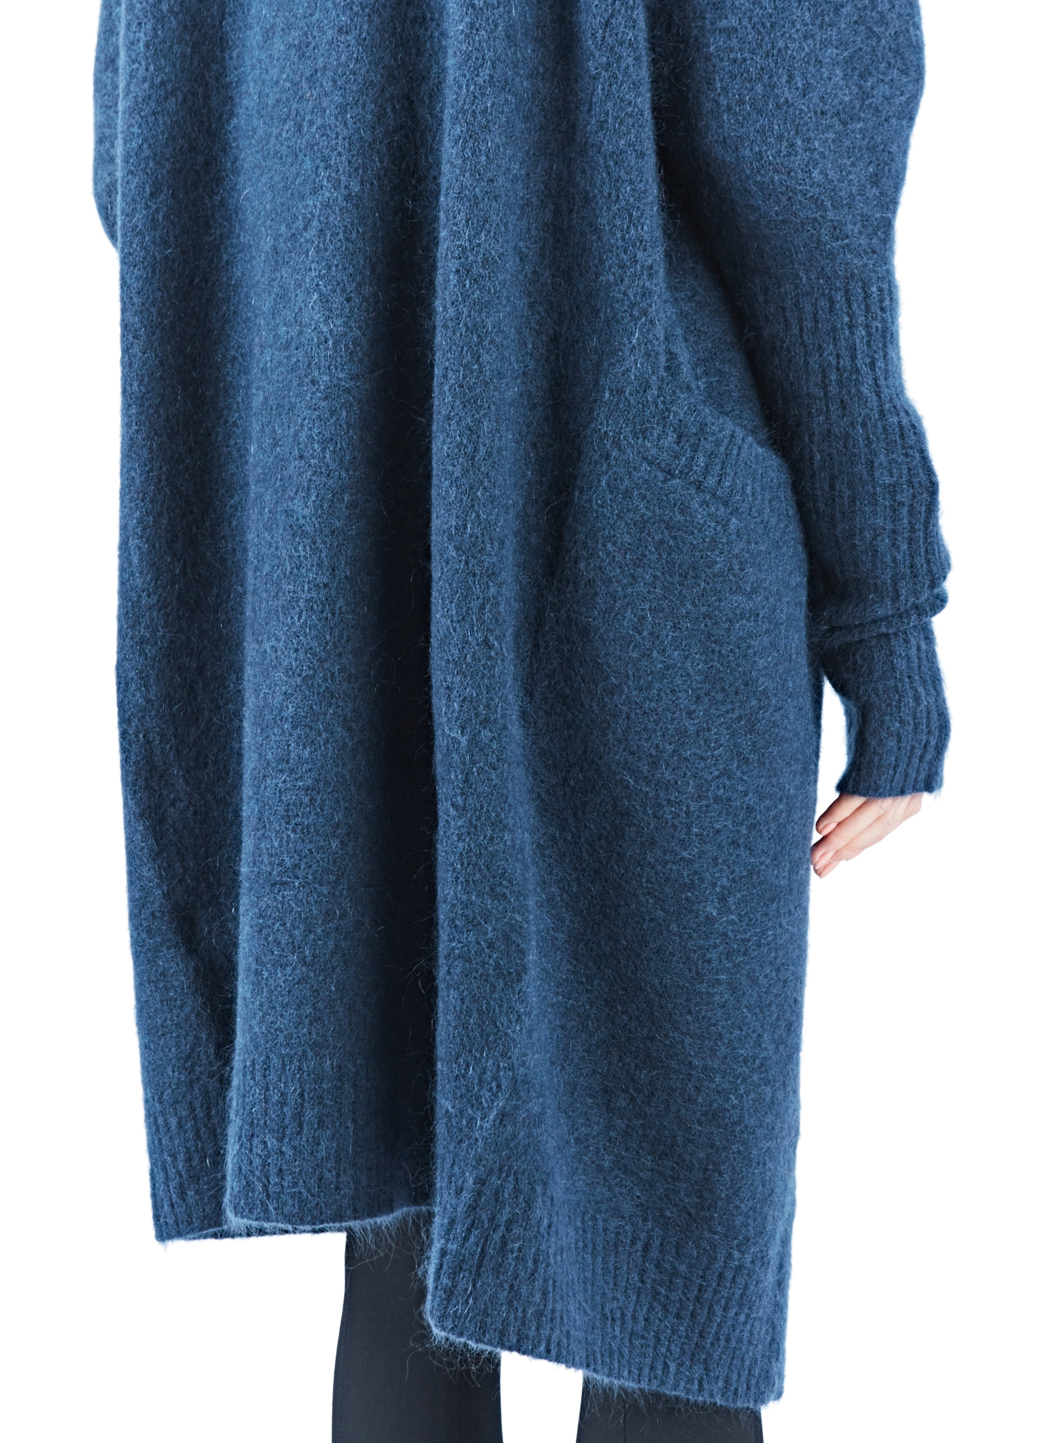 Brand new thick long mohair coat/ cardigan with buttons. Folded cuffs. Great collar! Your everyday outwear! Materials: Soft premium quality longhair mohair.